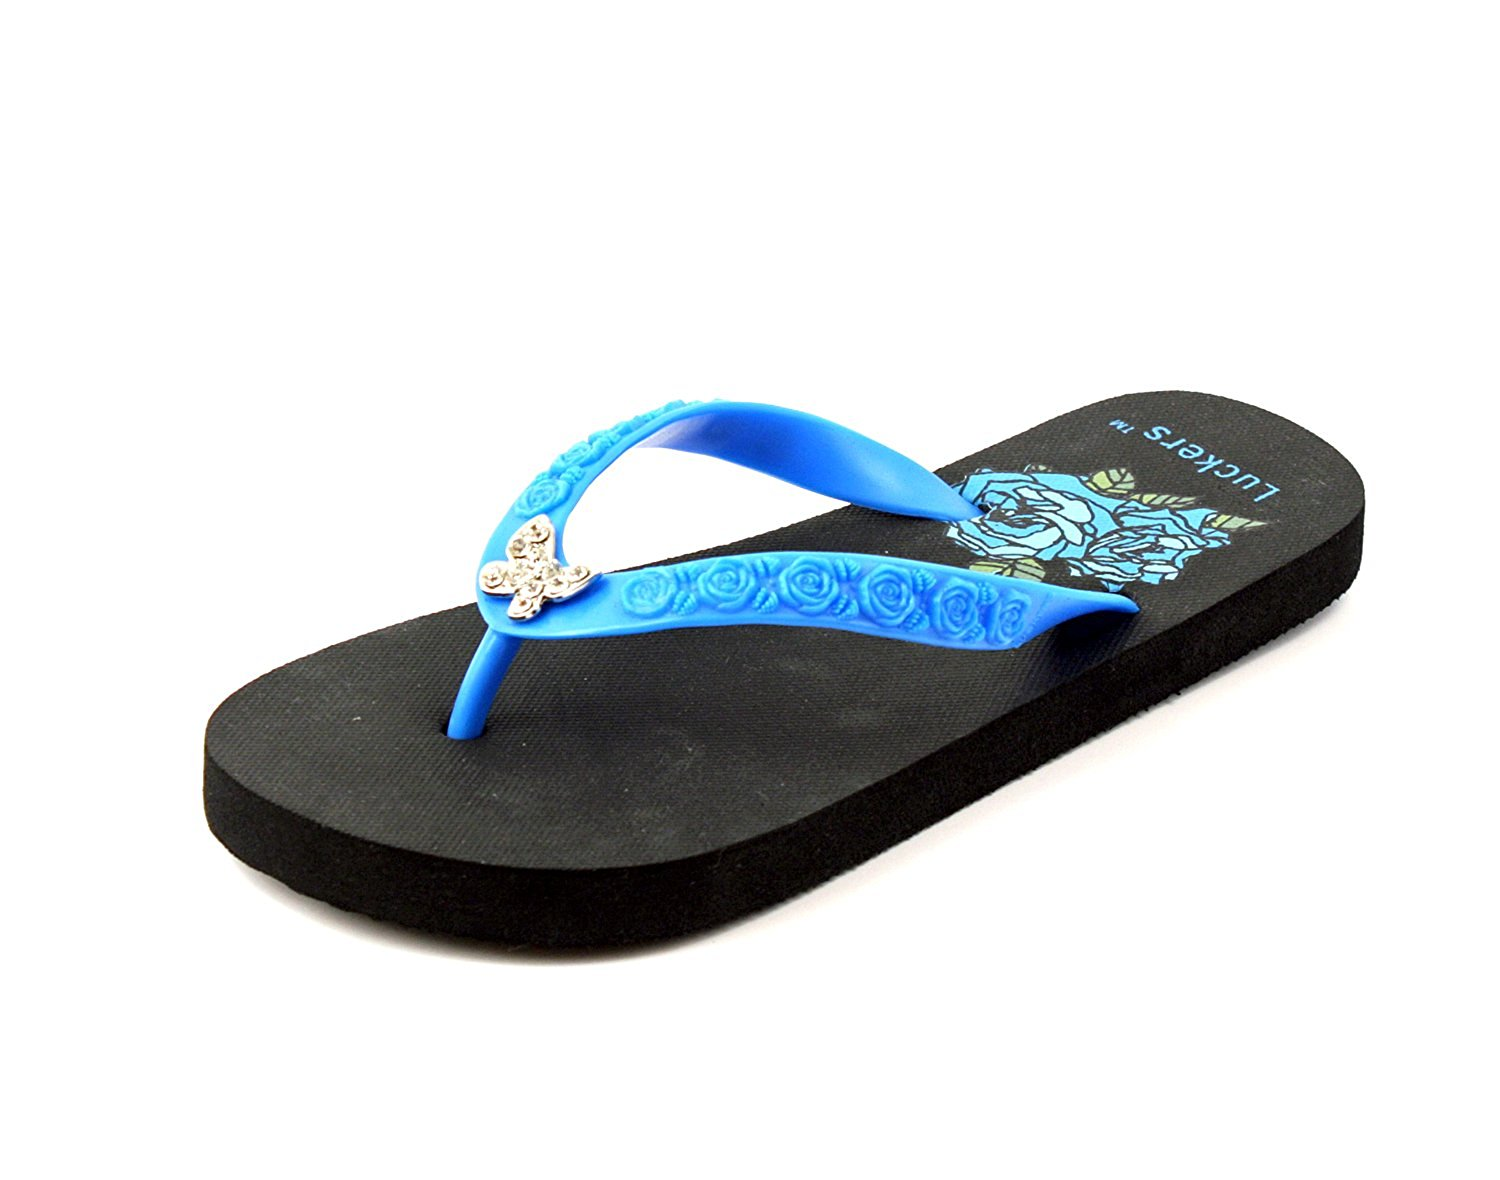 6219590fa231 Get Quotations · Luckers Girls Jeweled Flip-Flops Sandals